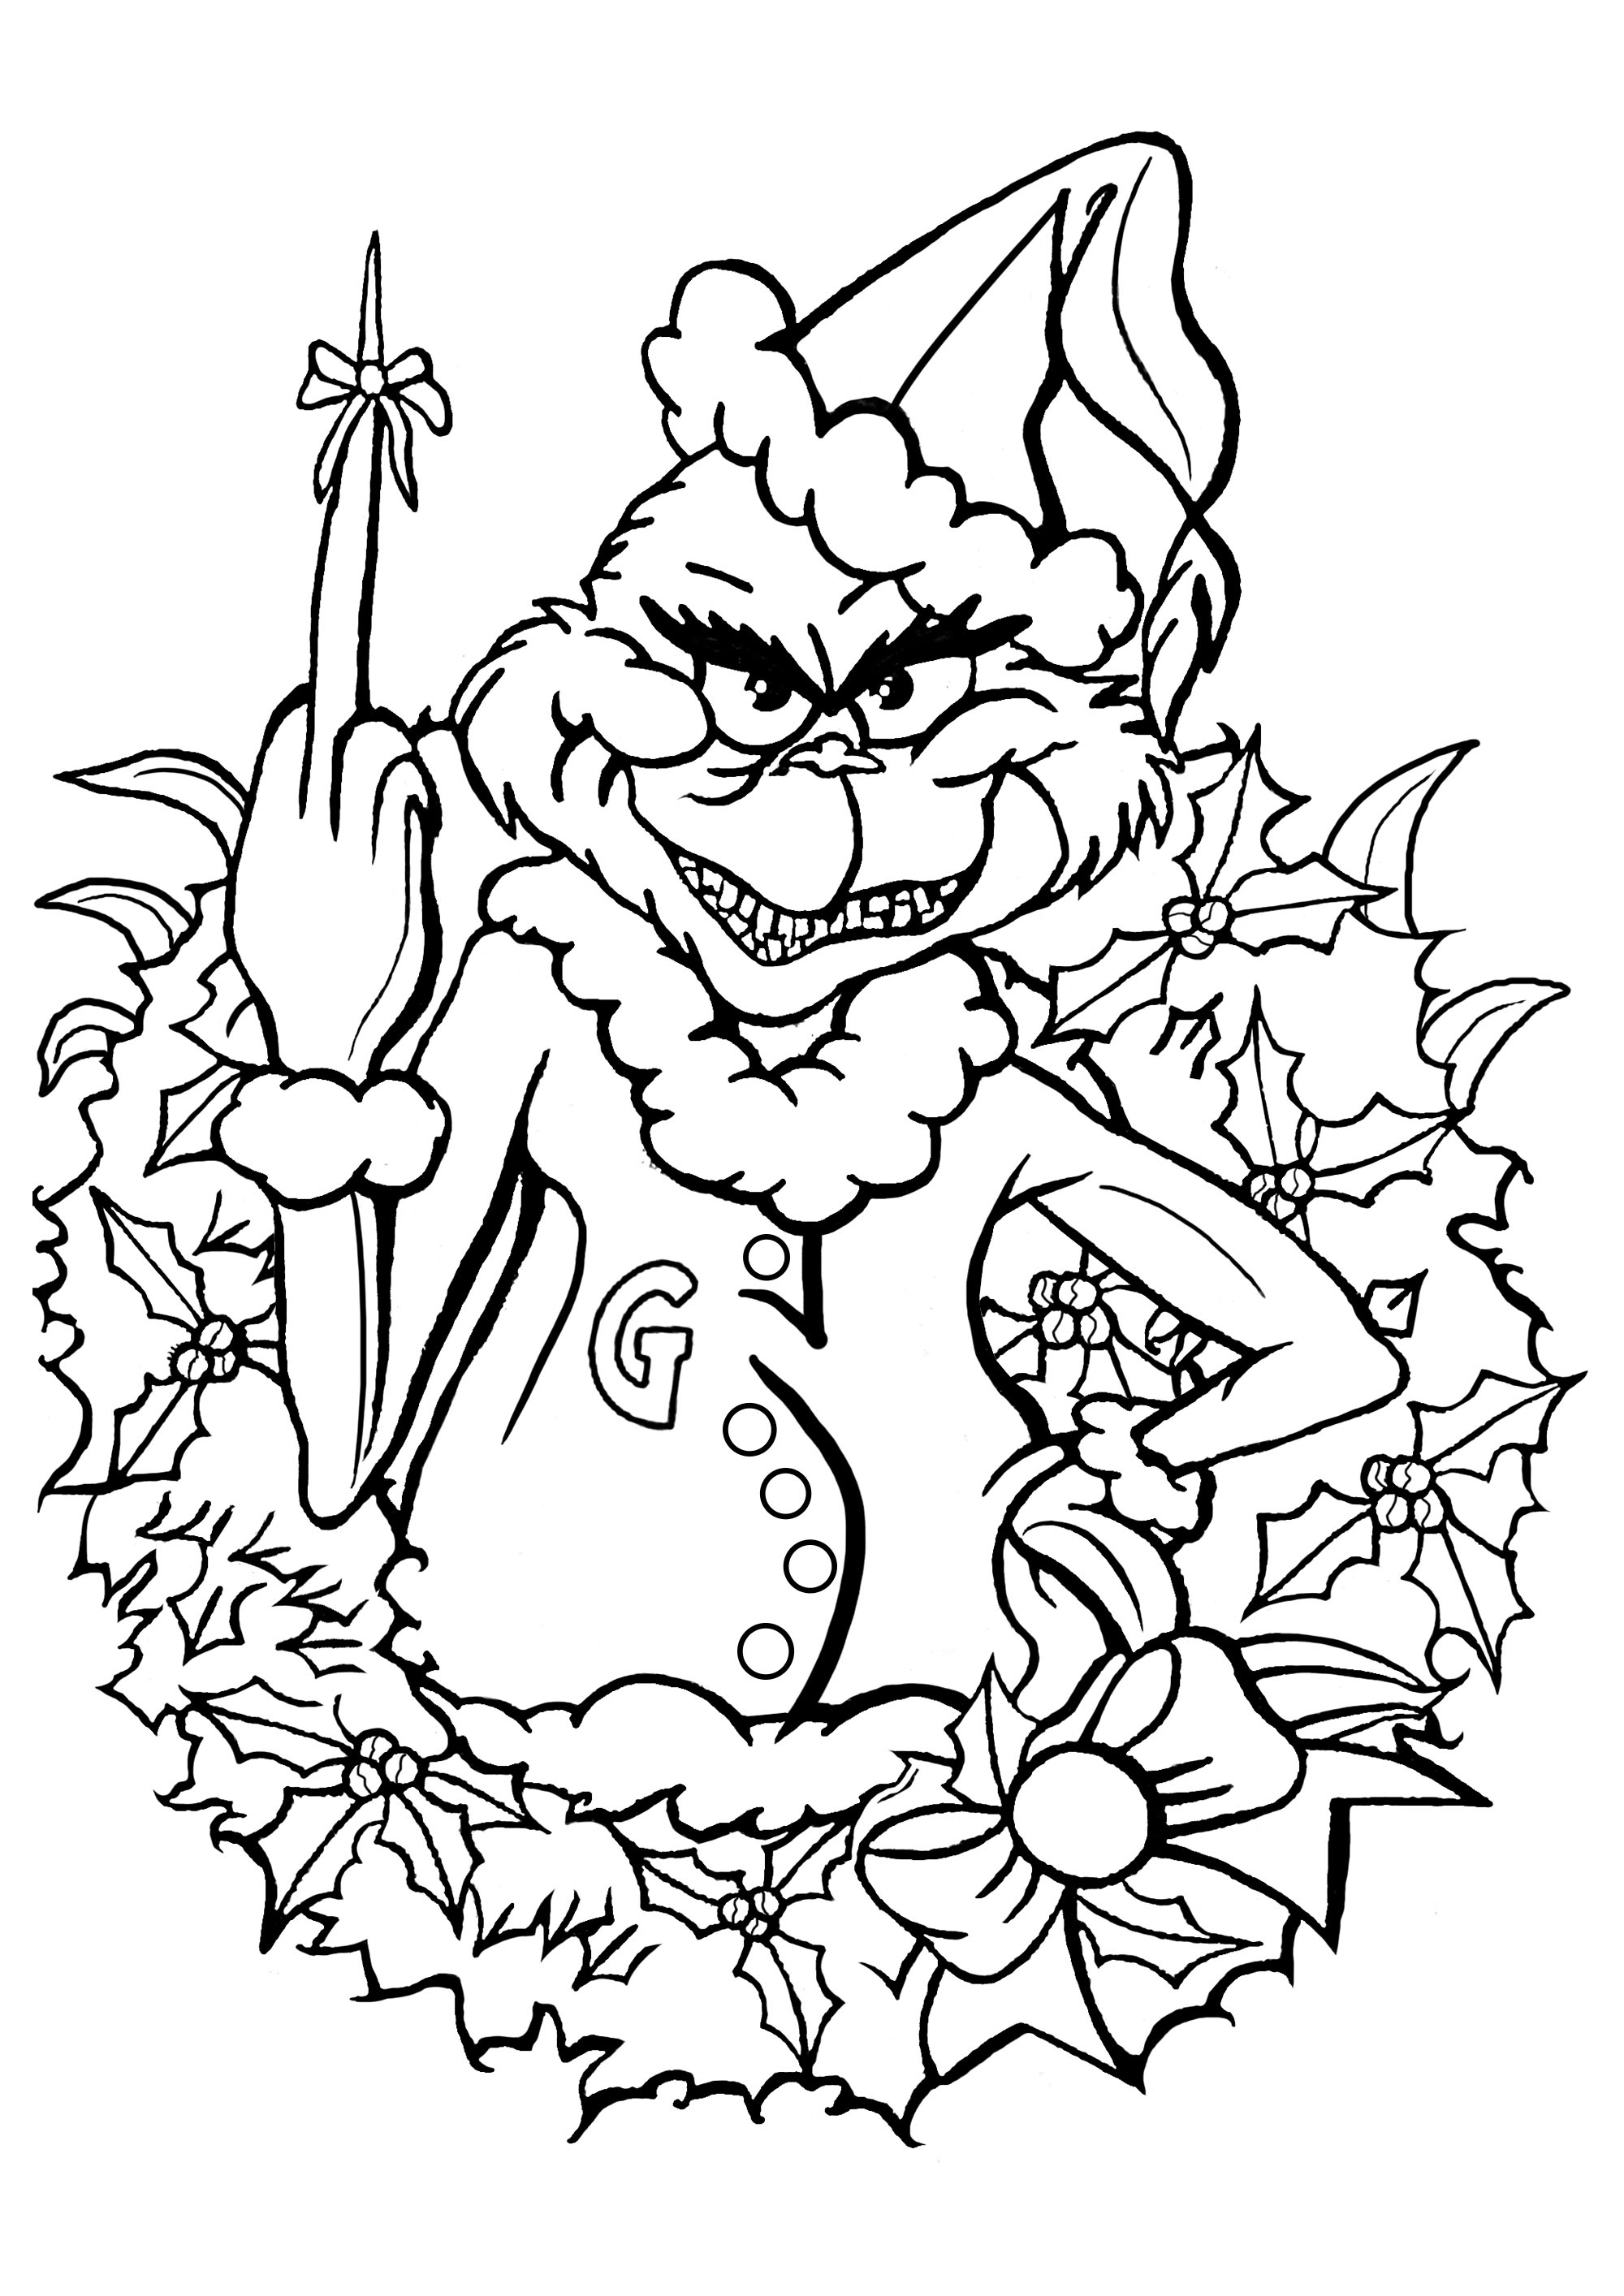 The Grinch Christmas Adult Coloring Pages